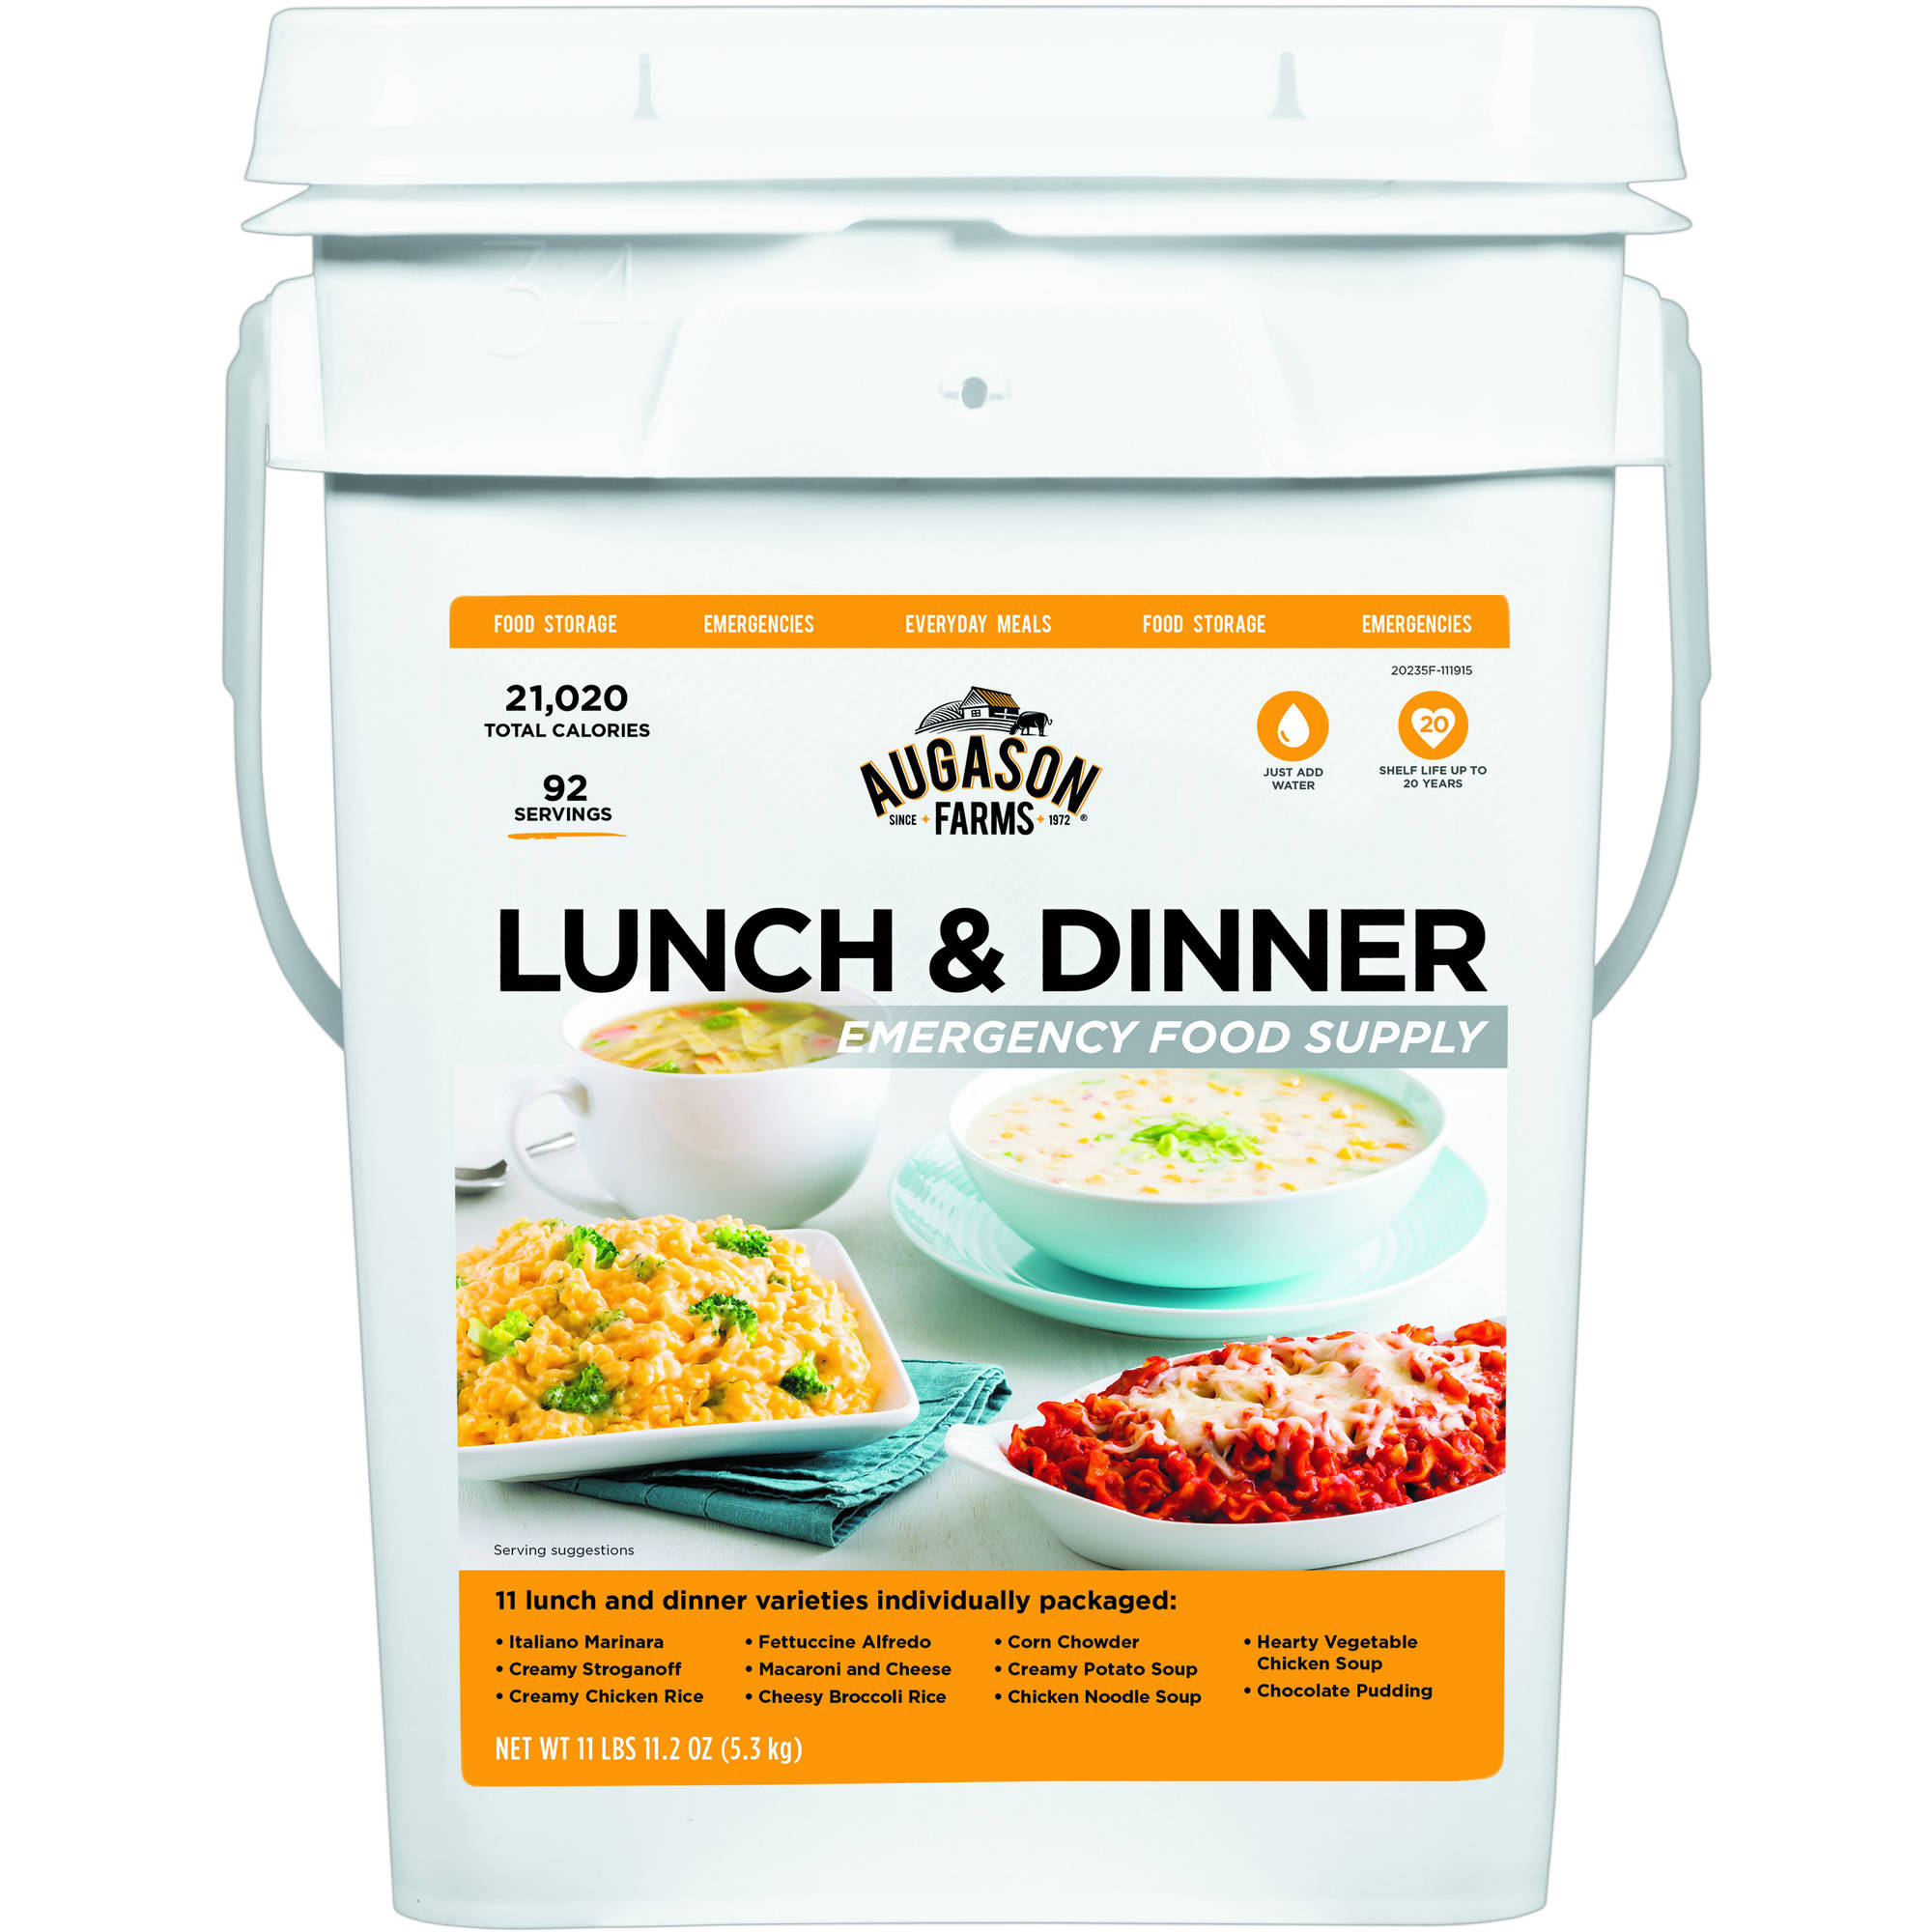 Augason Farms Lunch & Dinner Emergency Food Supply Storage Pail, 11.07 lbs